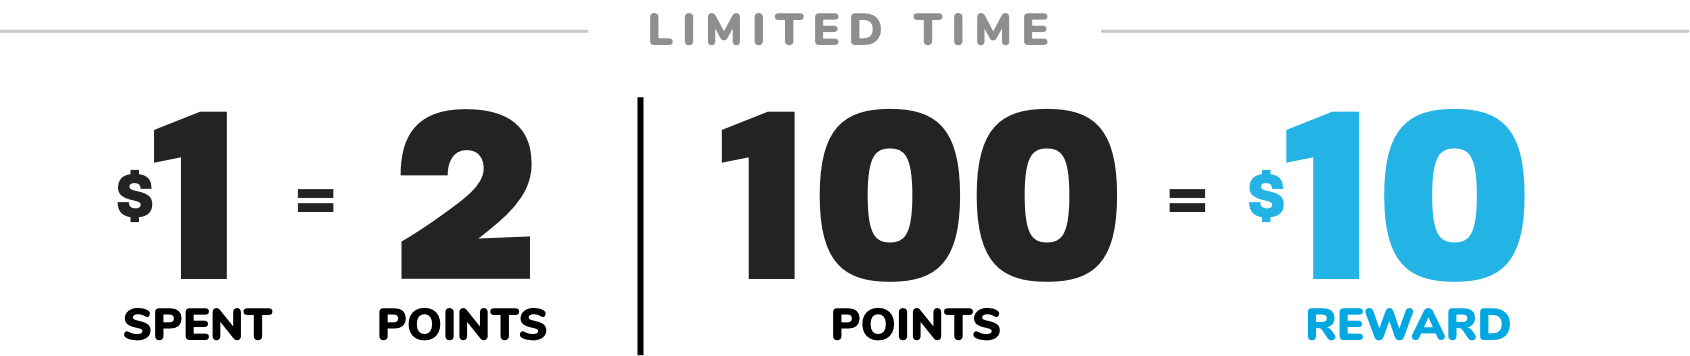 DOUBLE REWARDS   LIMITED TIME